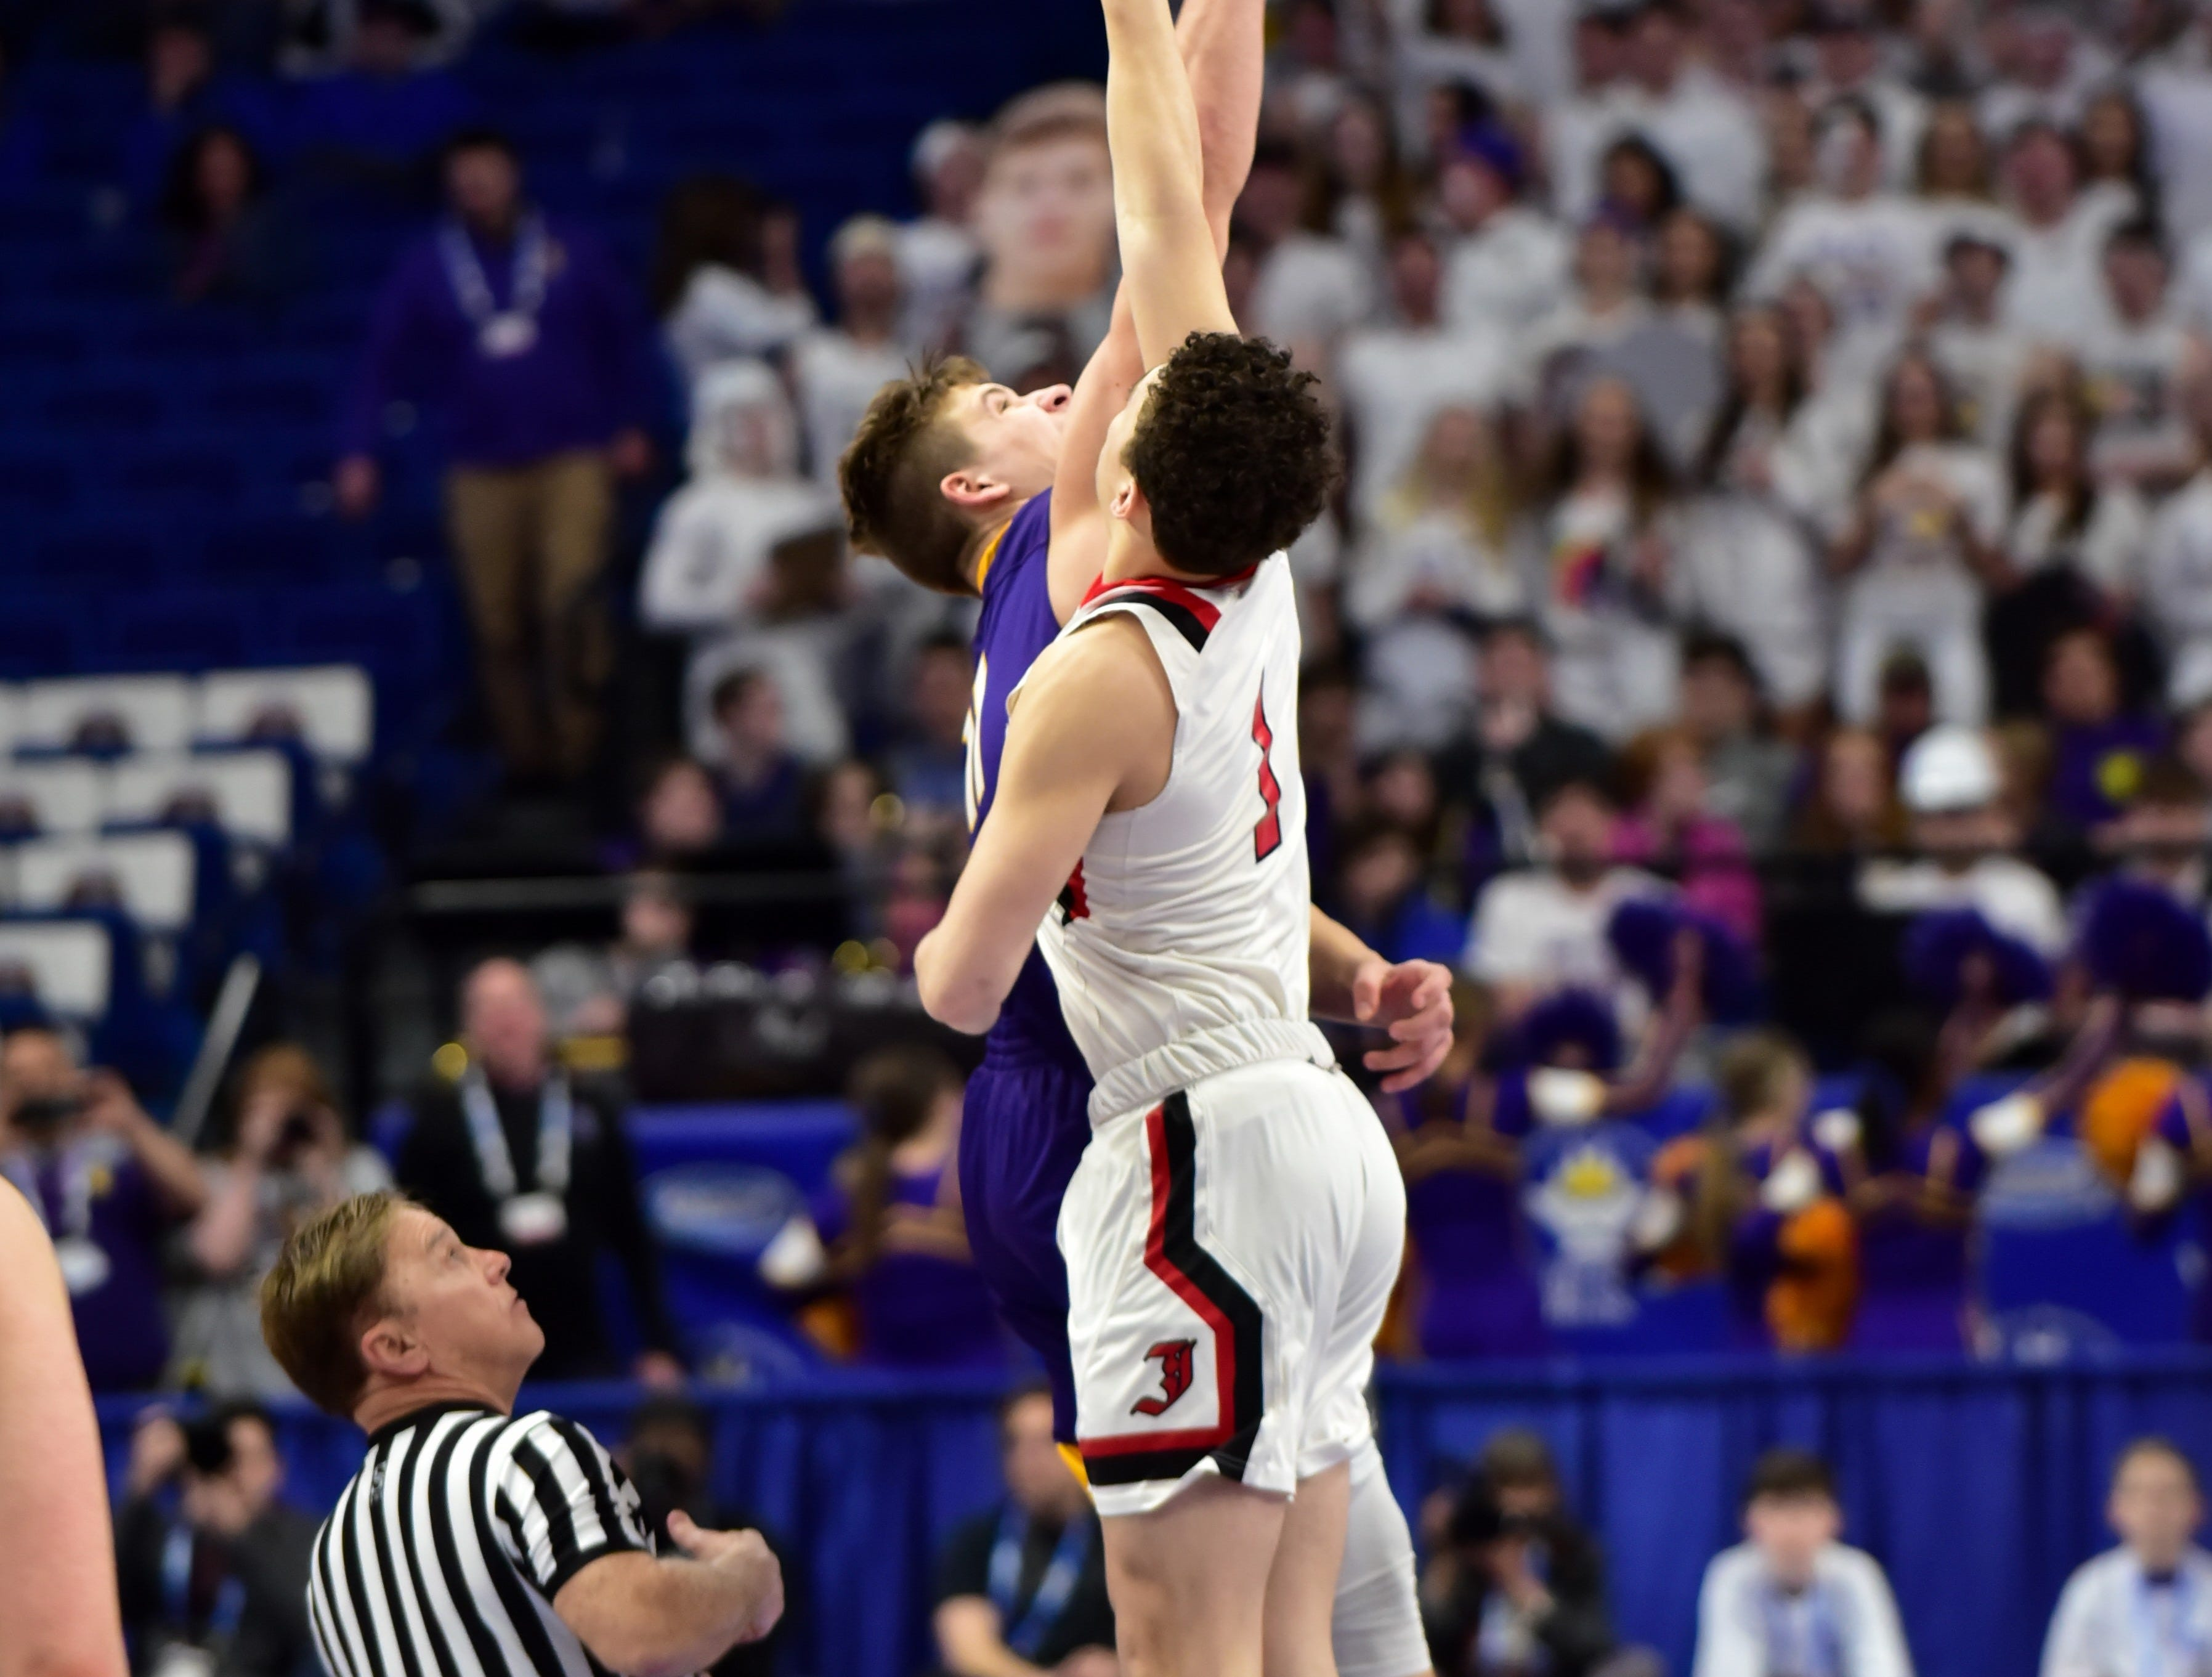 Campbell County tips of with John Hardin in the first round of action at the KHSAA Sweet 16 Tournament at Rupp Arena in Lexington, KY, March 6, 2019